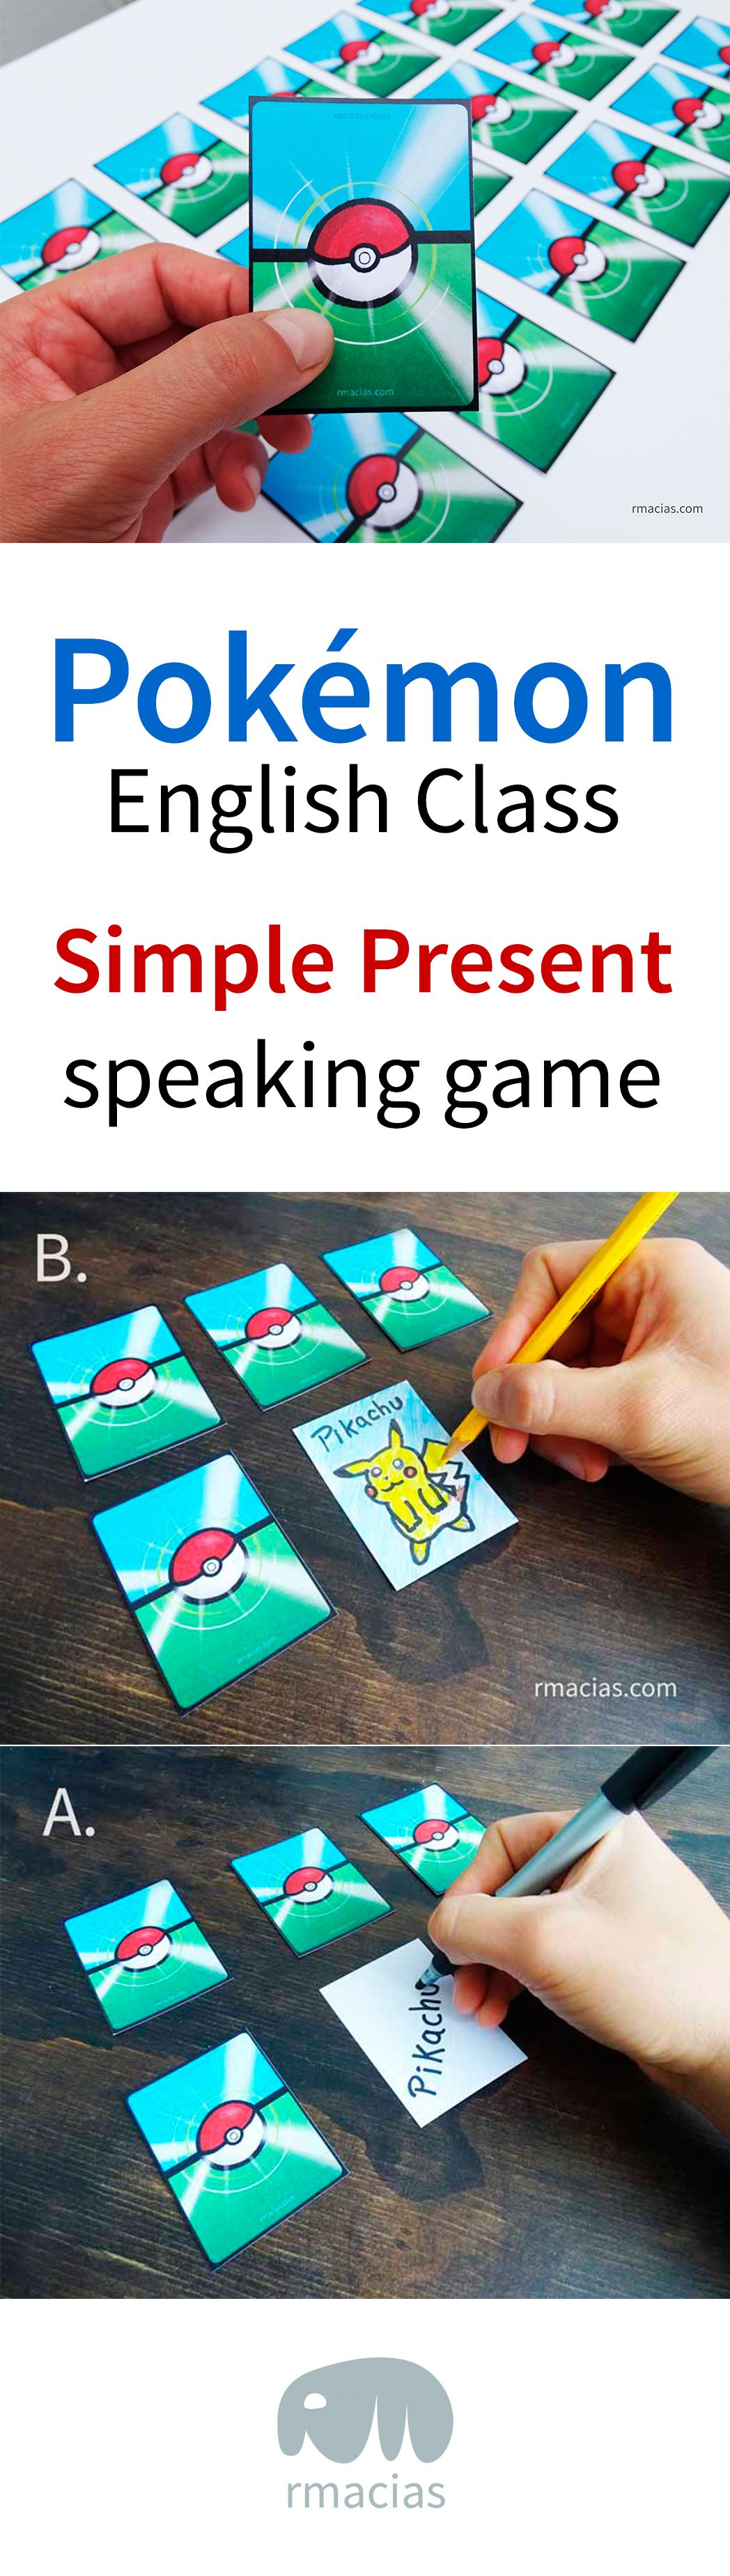 Pokémon Classroom Game for Teaching English Simple Present to Kids ...